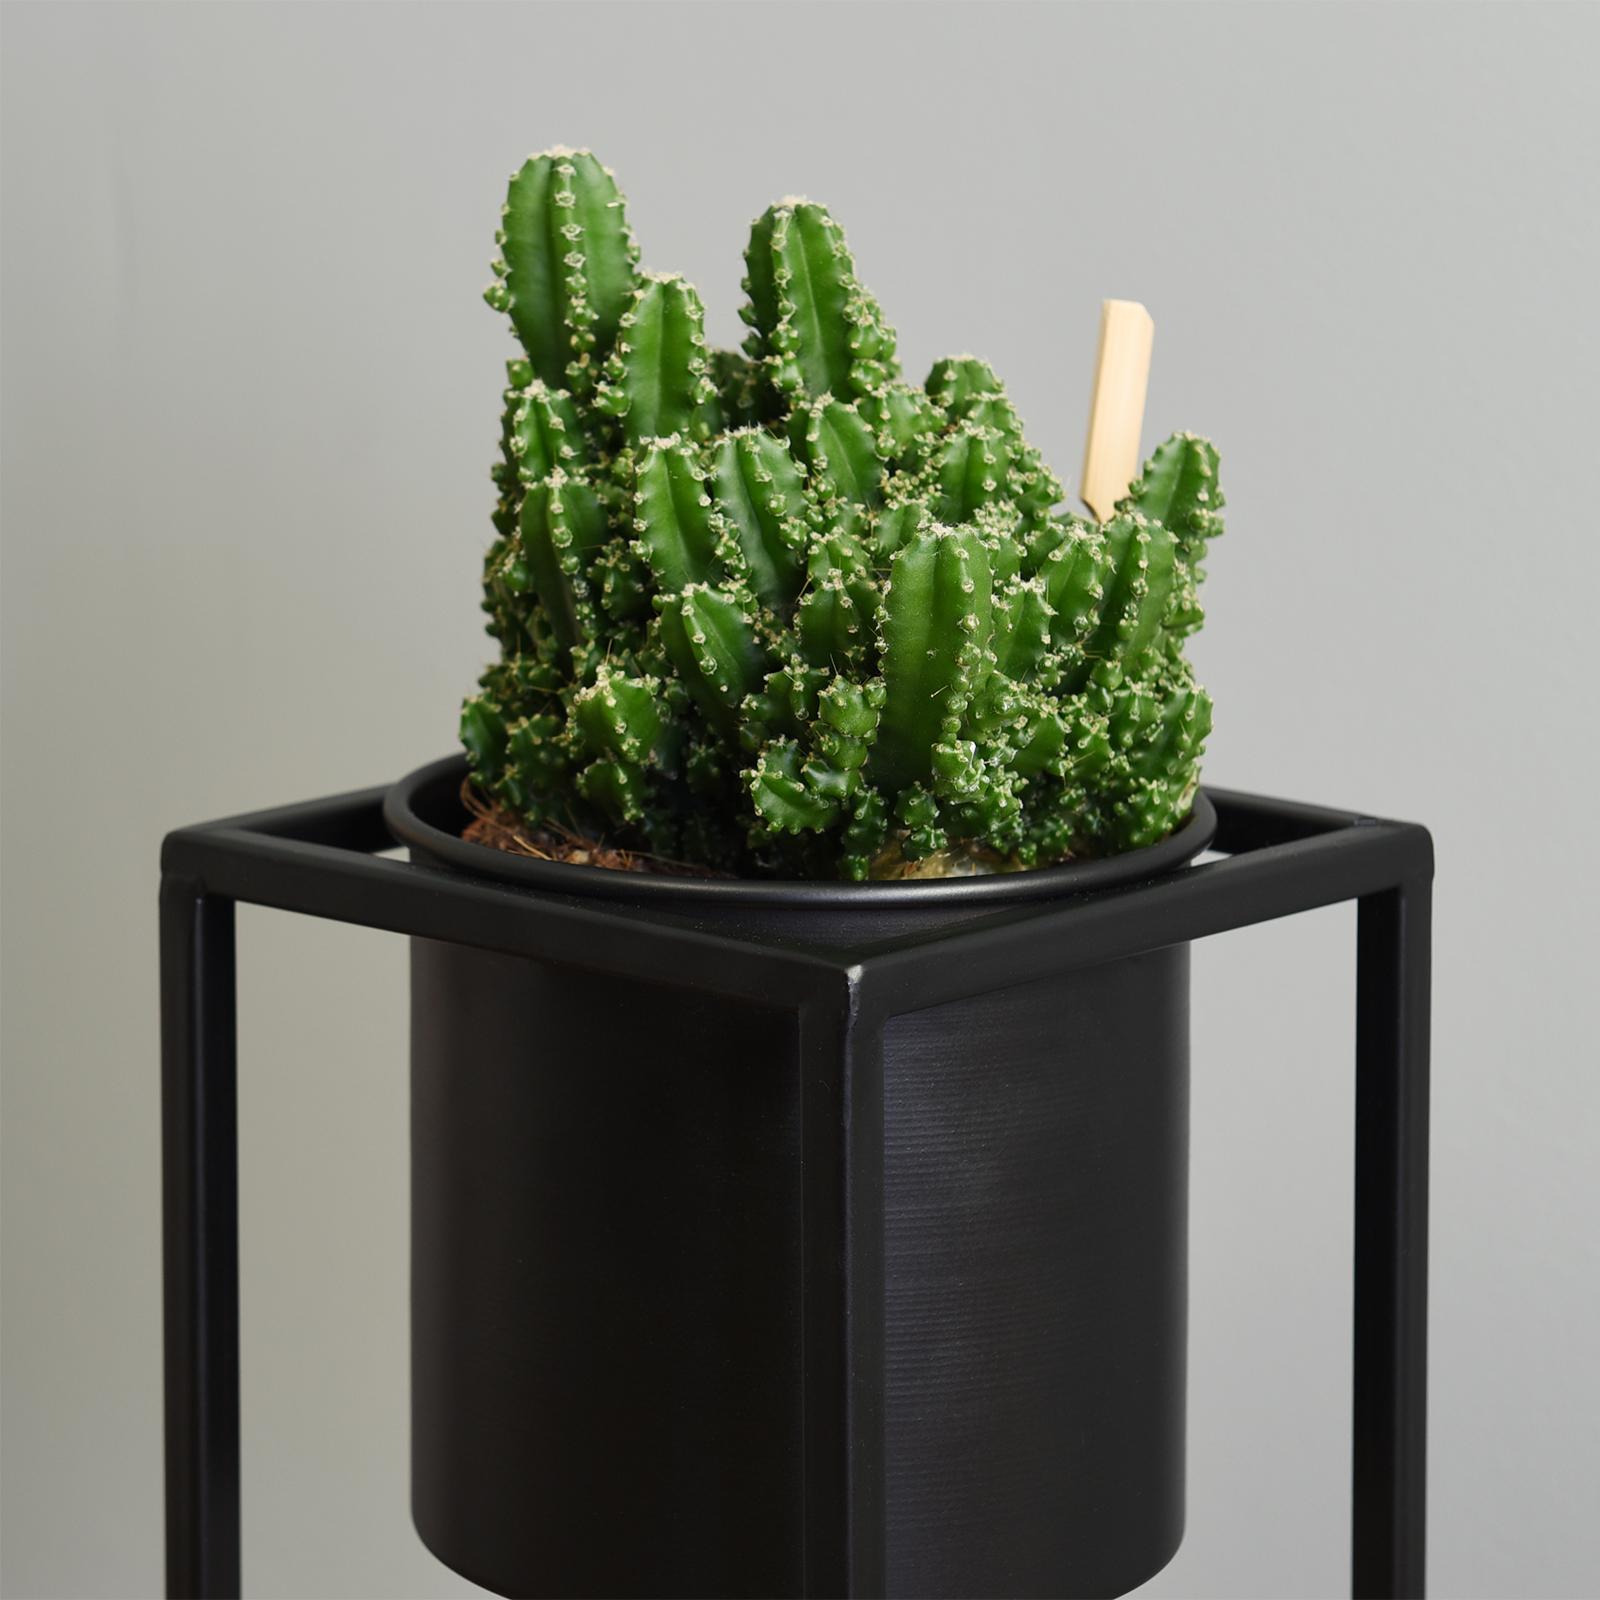 Hartleys-Small-Round-Freestanding-Black-Metal-Plant-Pot-Tall-Square-Floor-Stand thumbnail 11